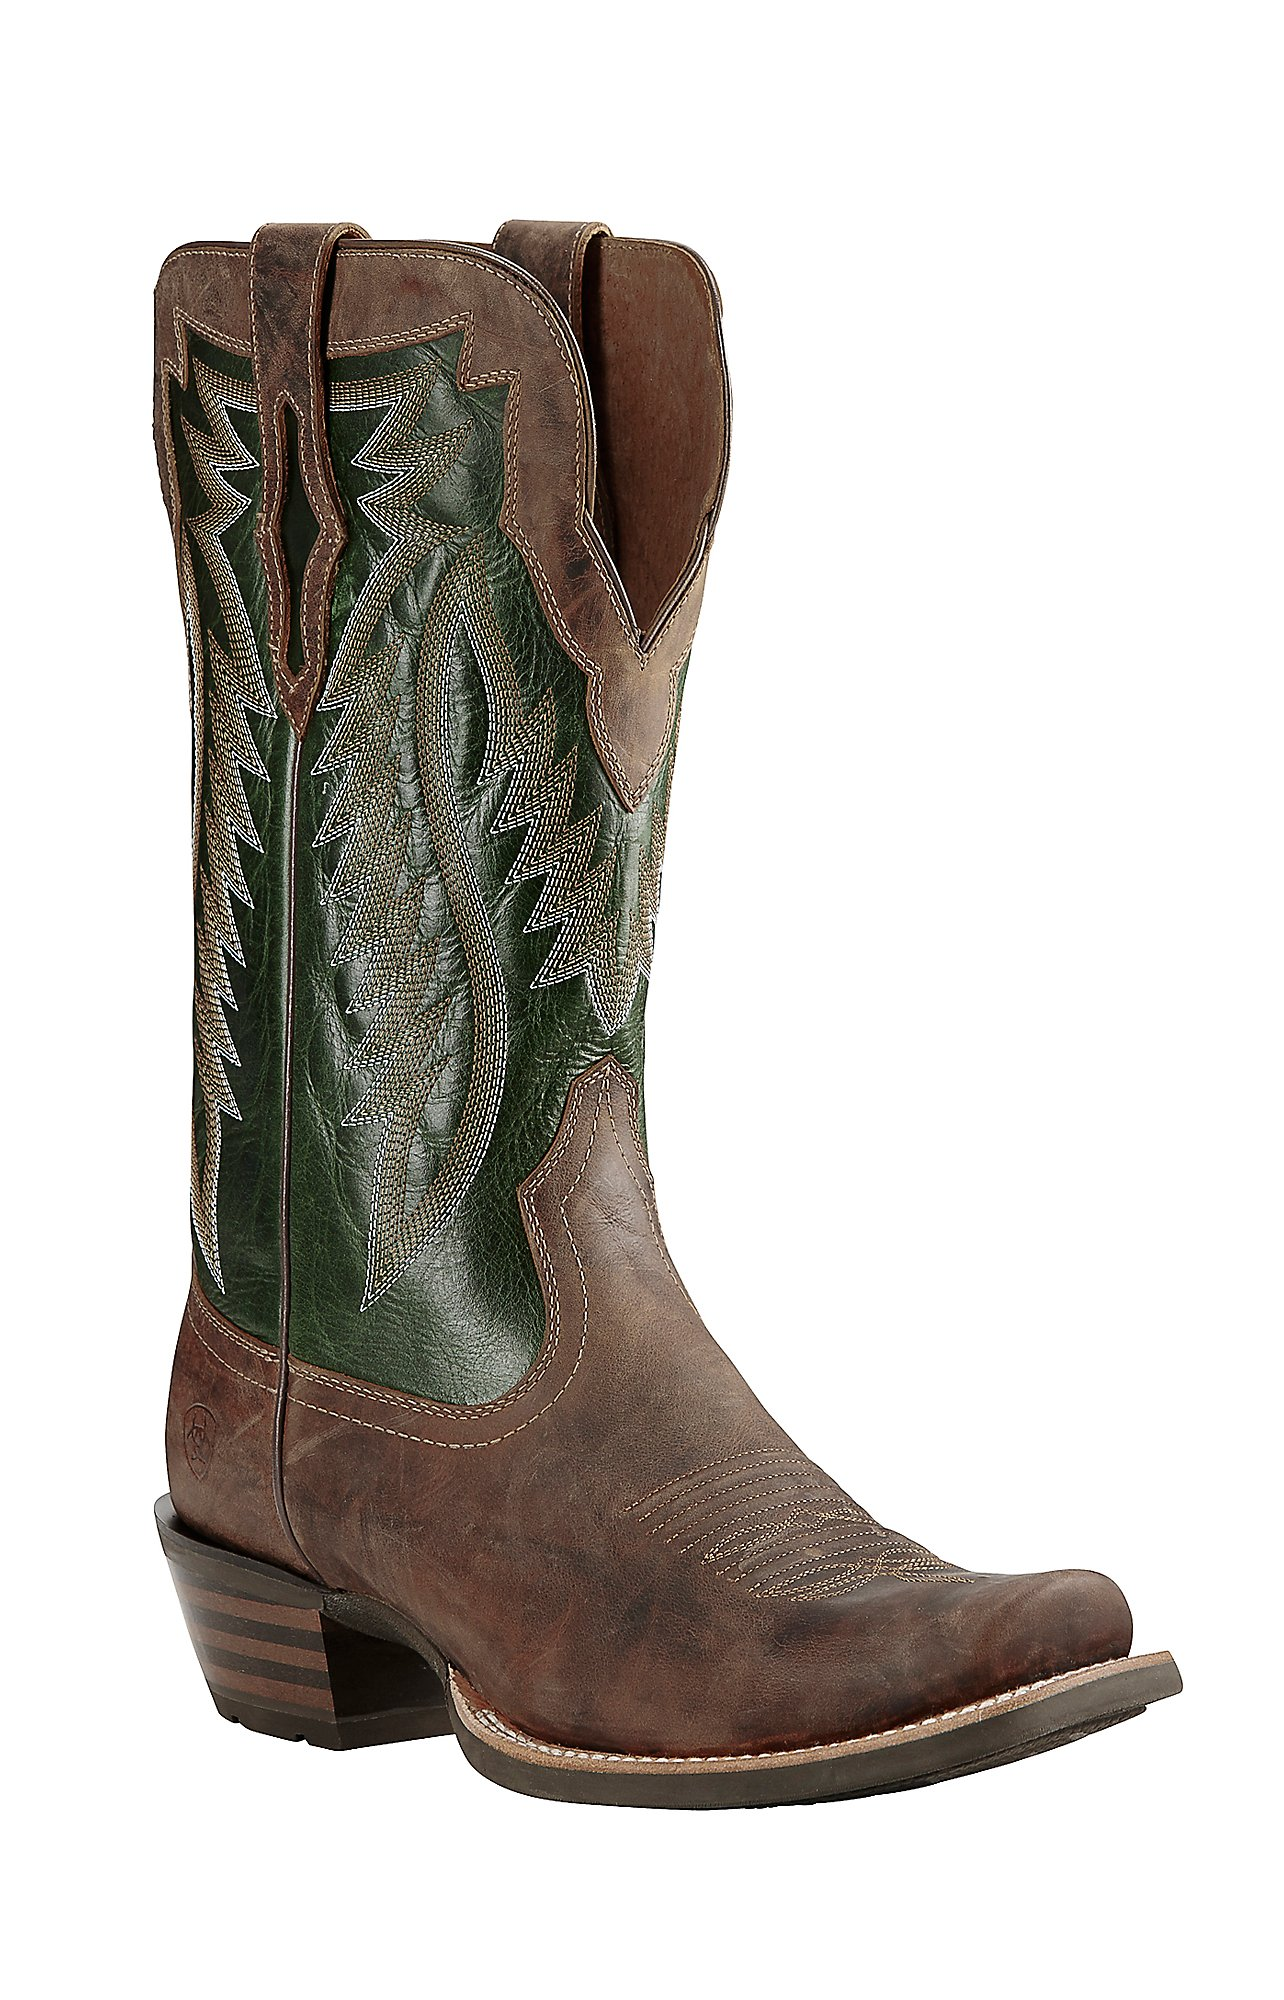 Ariat Men's Brown with Green Upper Western Square Toe | Cavender's